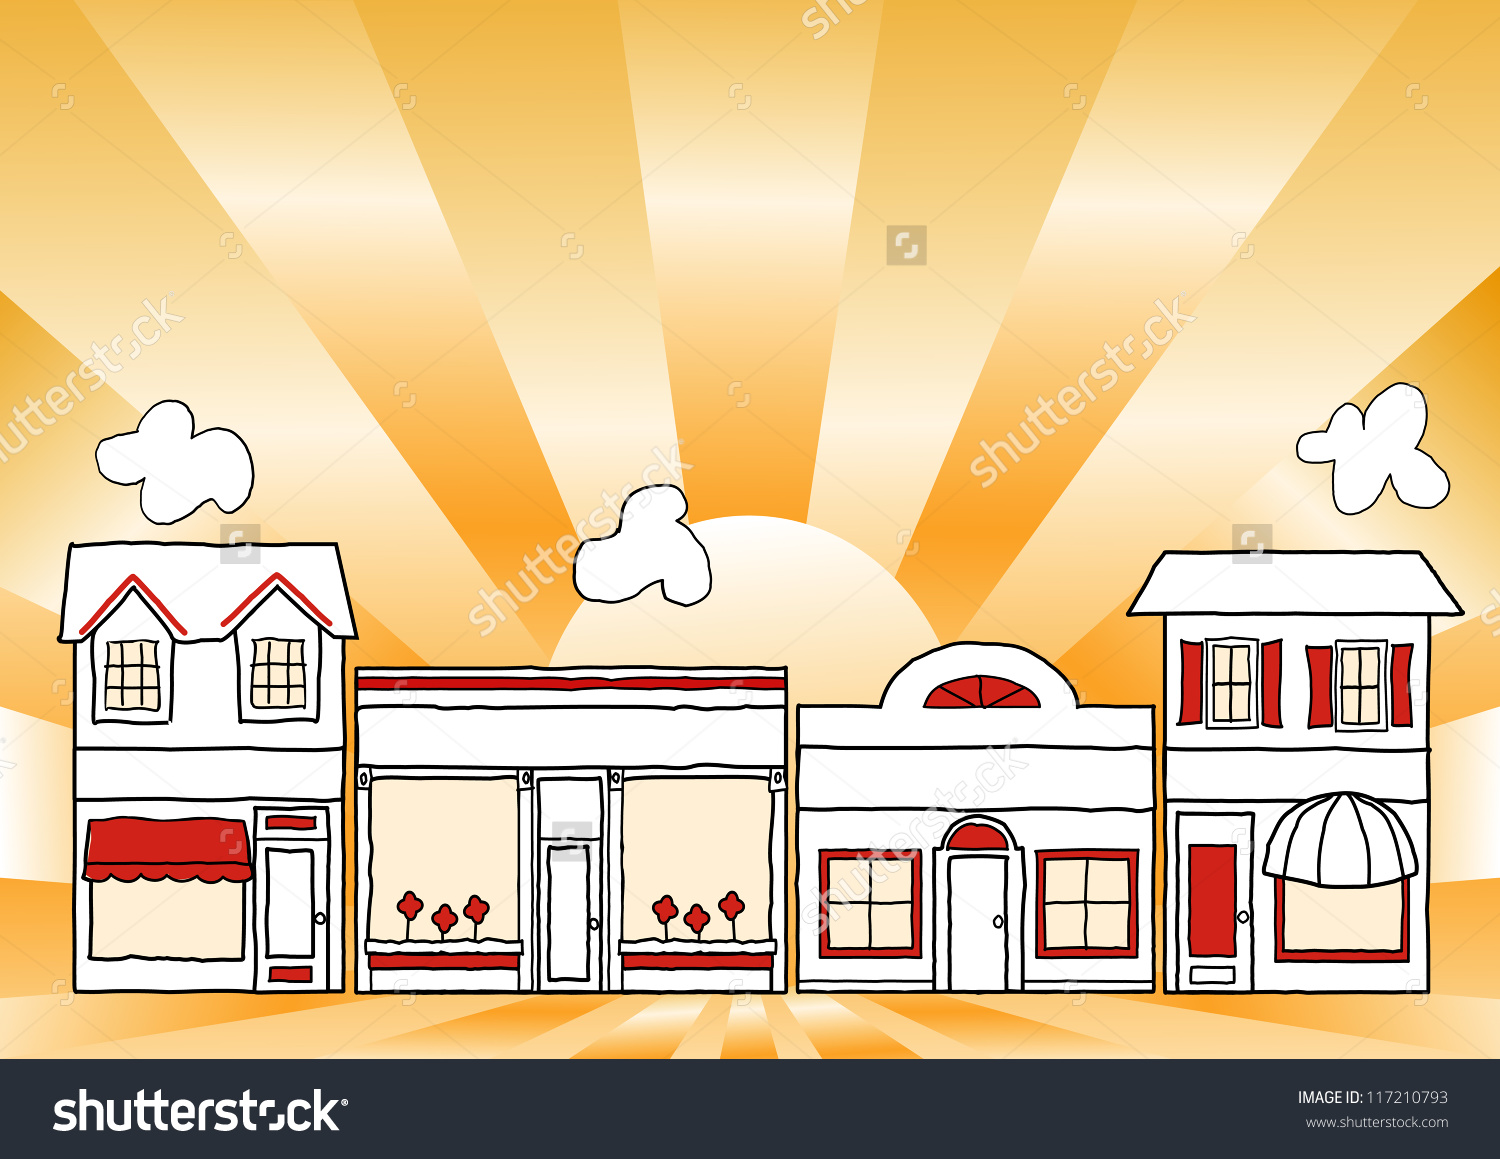 Row of shops clipart image stock Small Business Main Street Row Small Stock Illustration 117210793 ... image stock